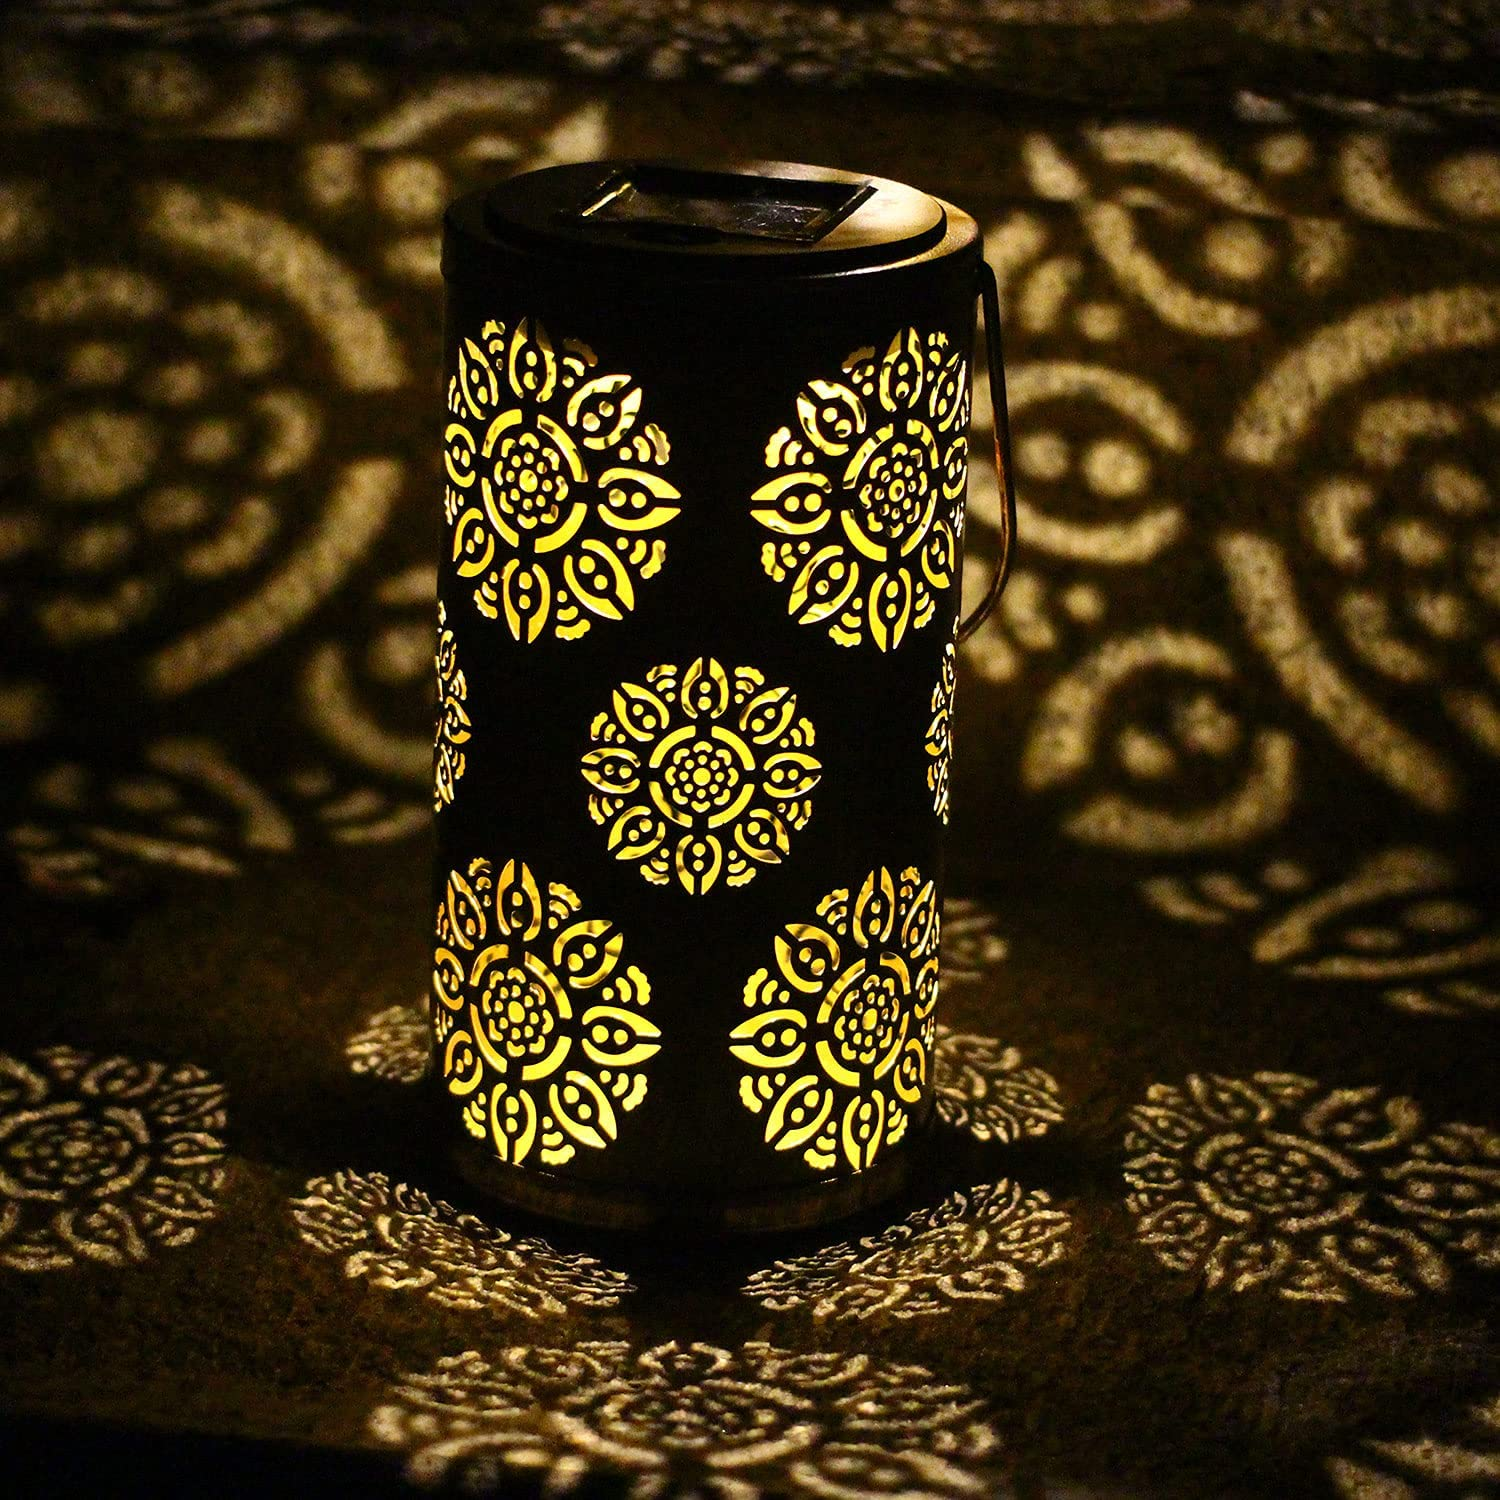 Solar Metal Lantern Garden Accessories Outdoor Decorations Outside Decor Flower Pattern for Yard Patio Balcony Table, Hanging Light Decorative LED, Gifts for Women, Waterproof